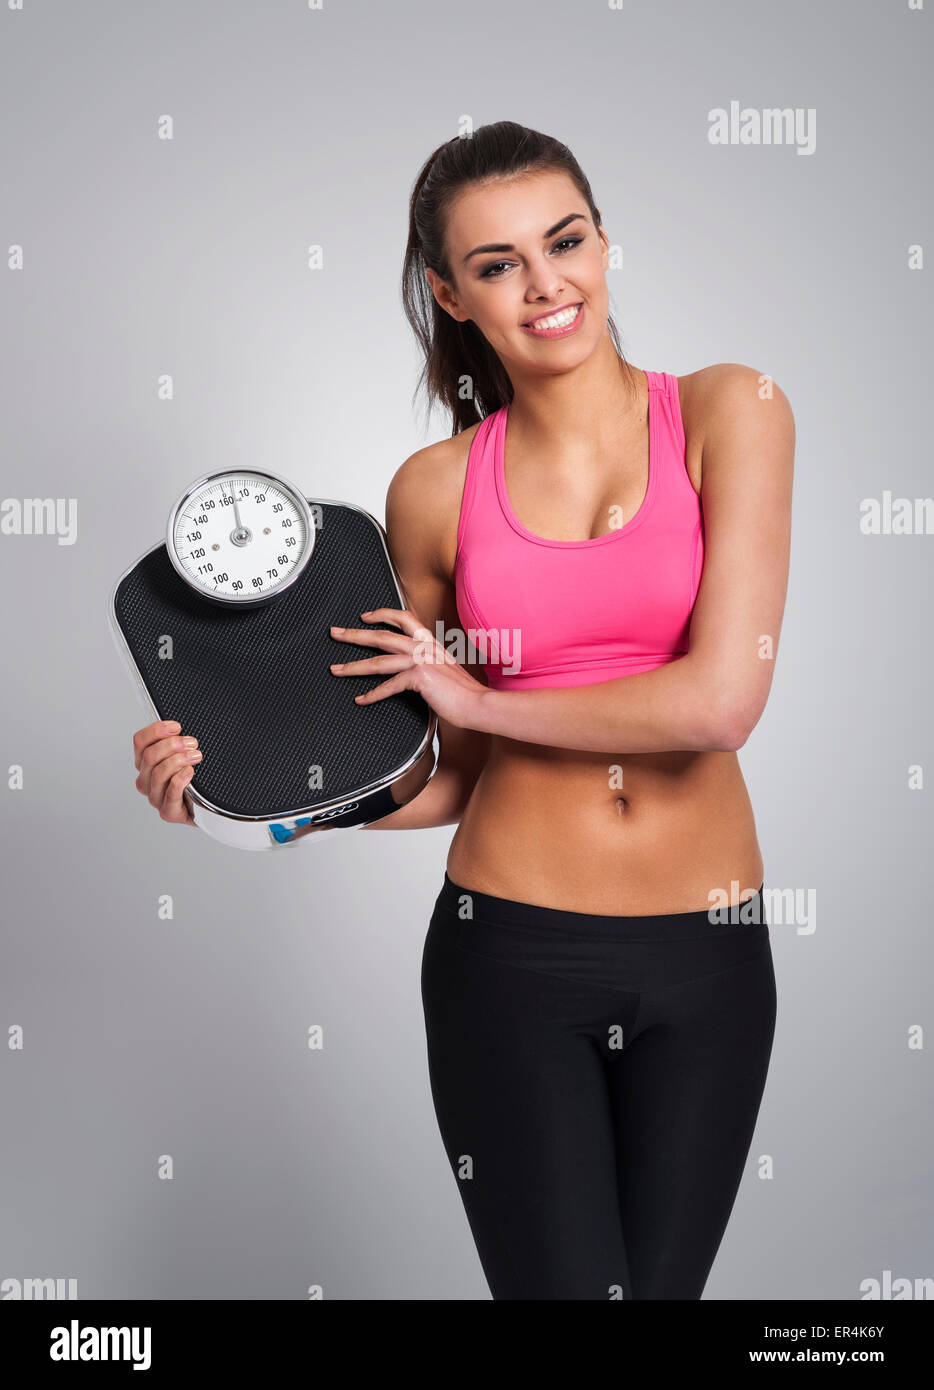 Smiling woman controlling her weight. Debica, Poland - Stock Image